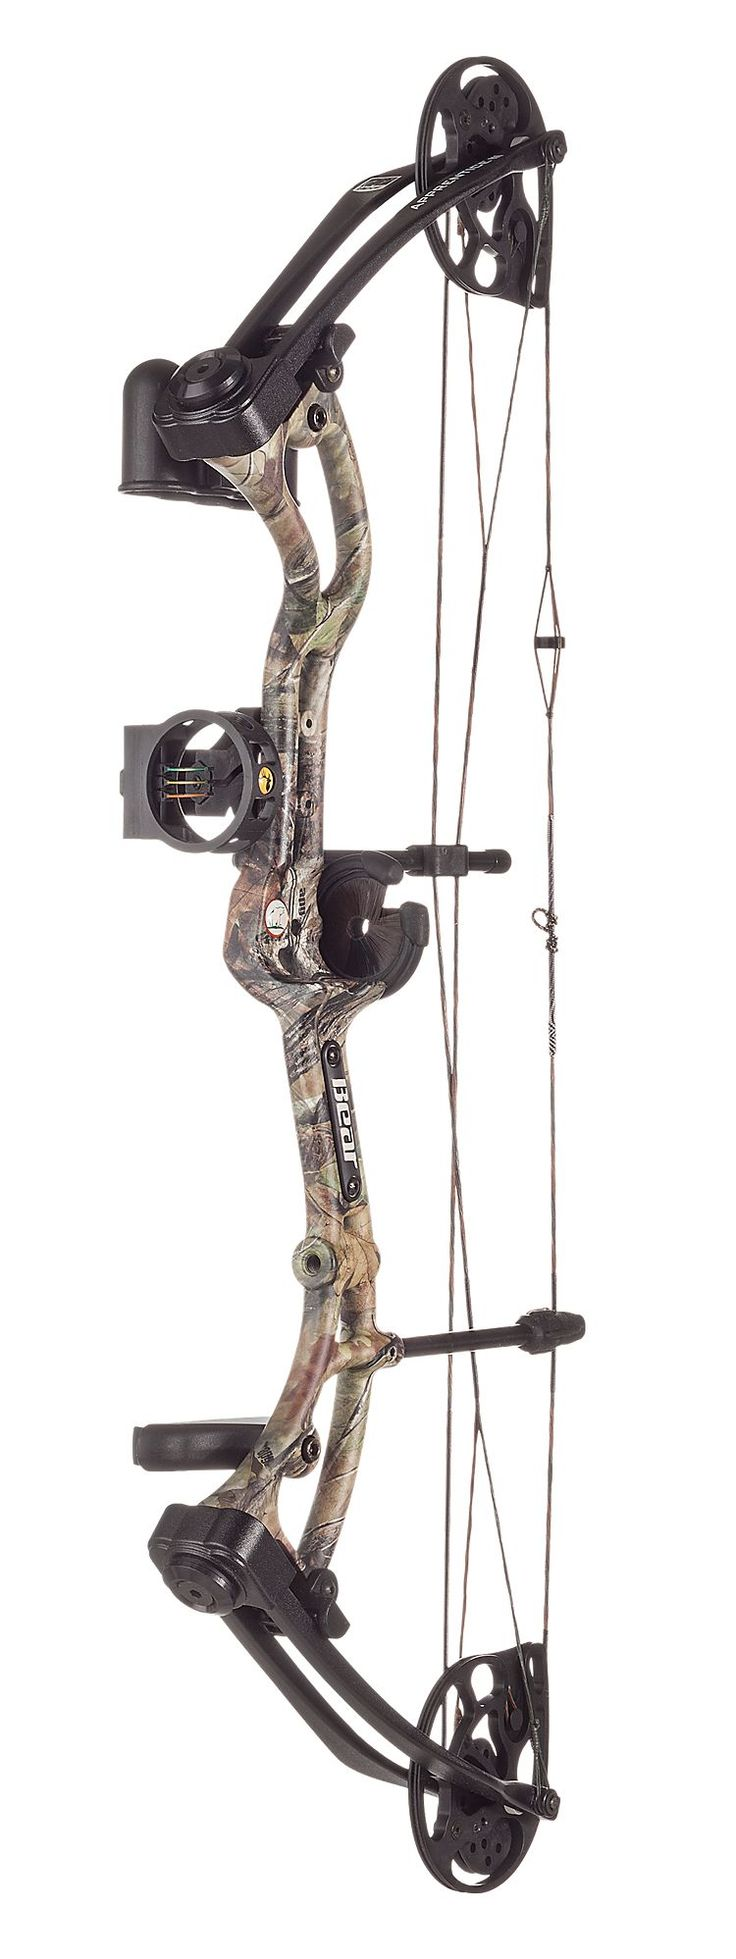 Bear Archery Apprentice 3 RTH Compound Bow Package Bass